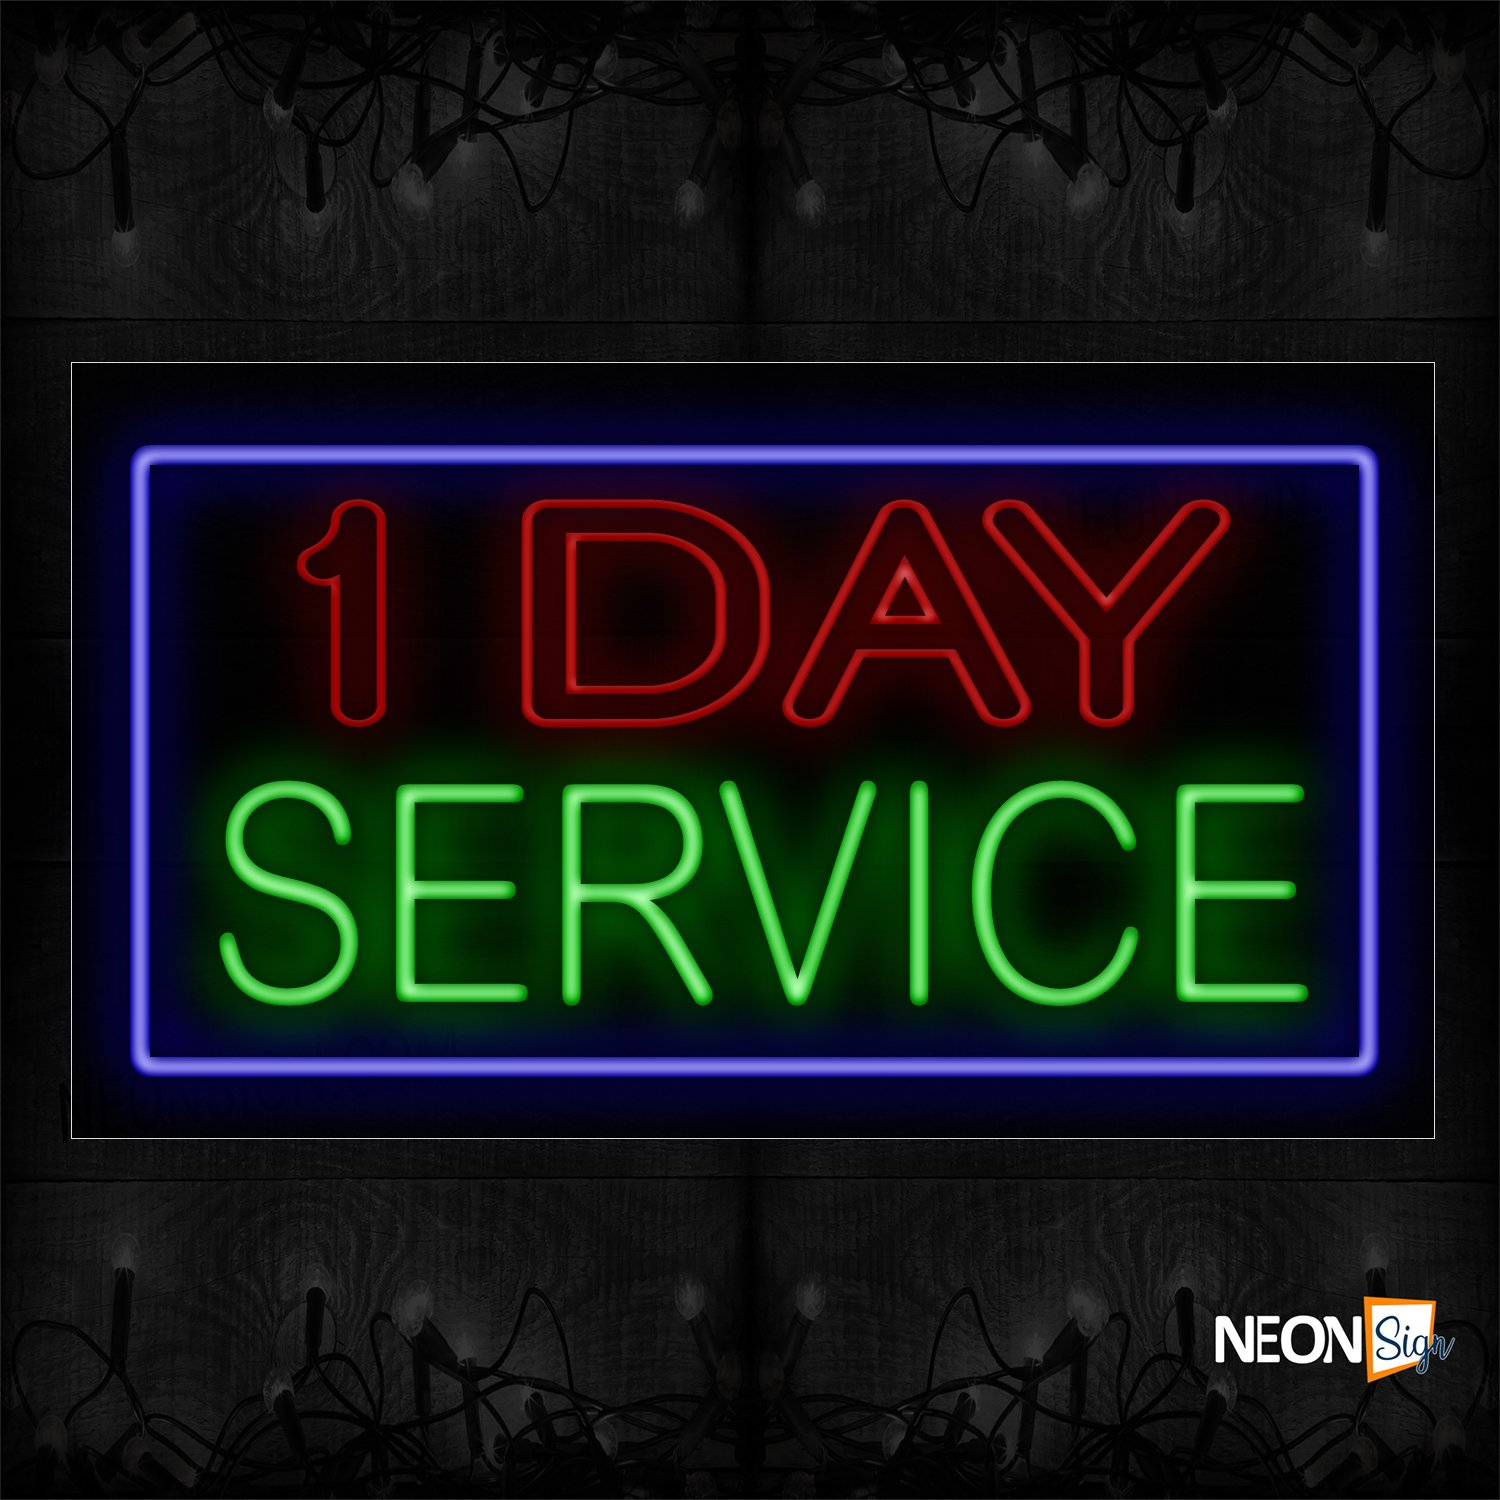 Image of 11799 1 Day Service With Border Neon Signs_20x37 Black Backing